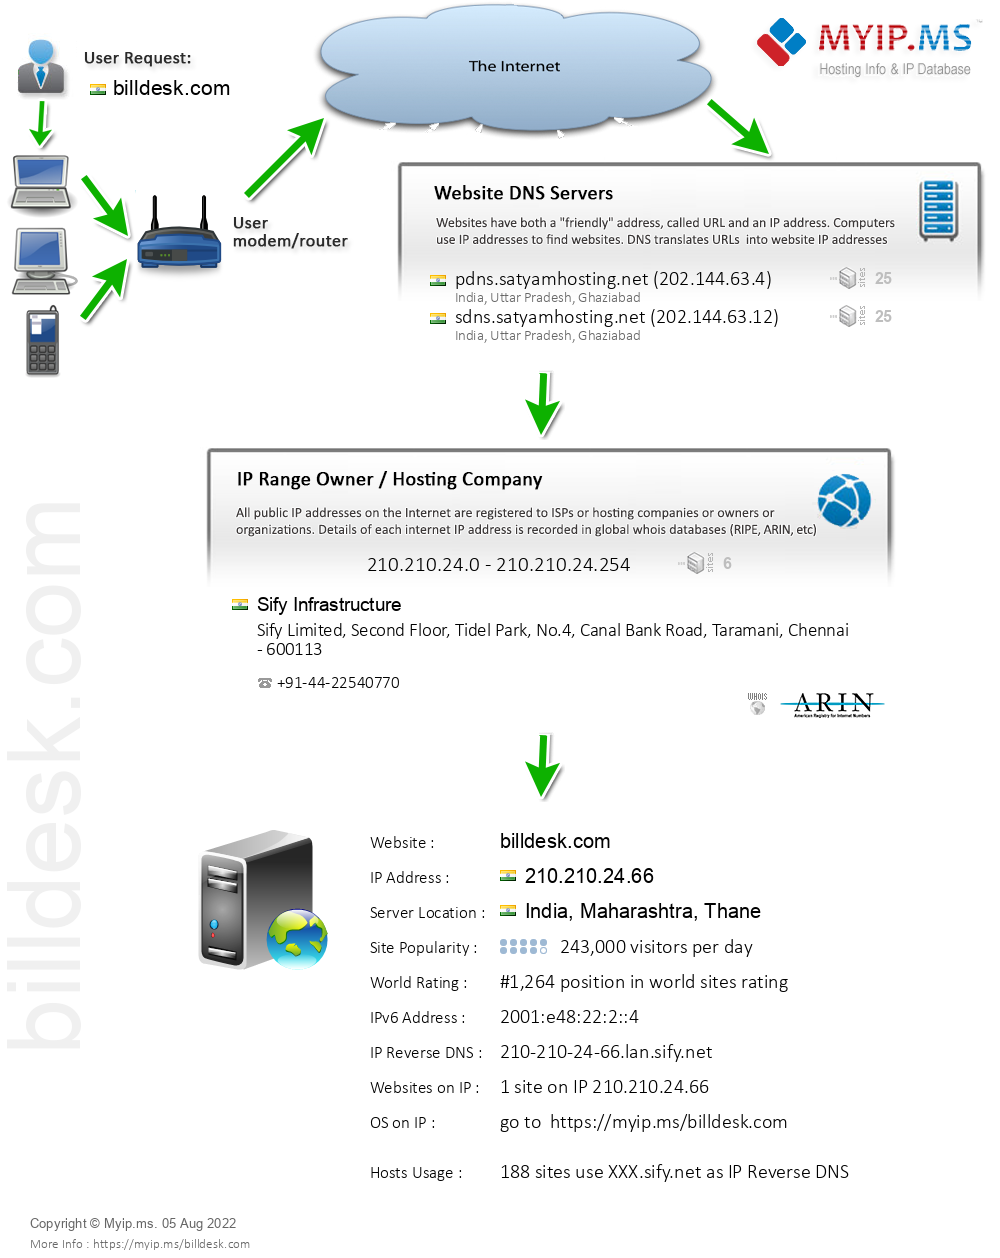 Billdesk.com - Website Hosting Visual IP Diagram